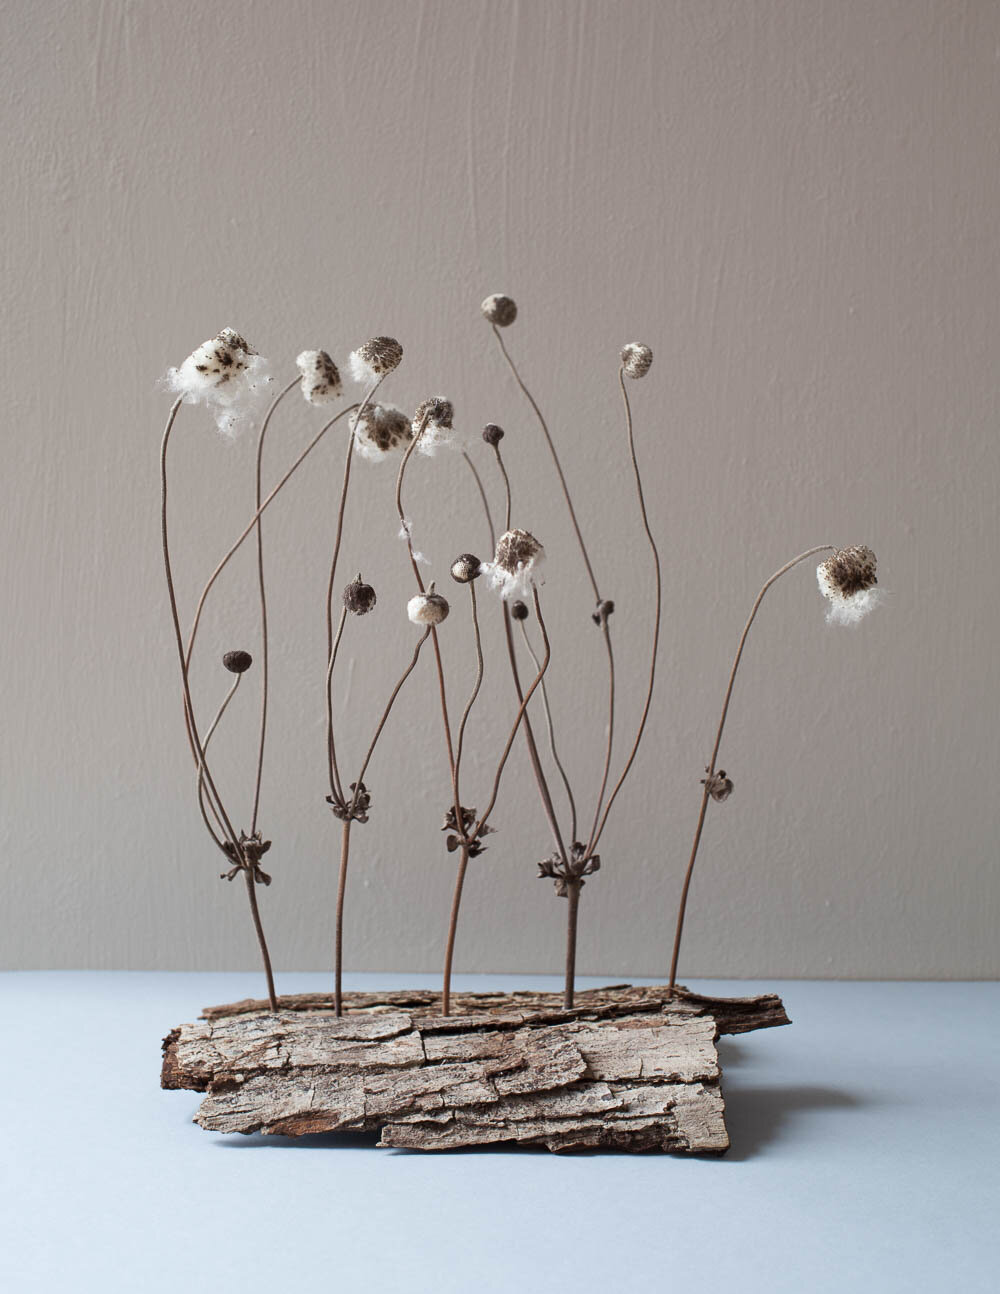 Seed heads and bark sculpture